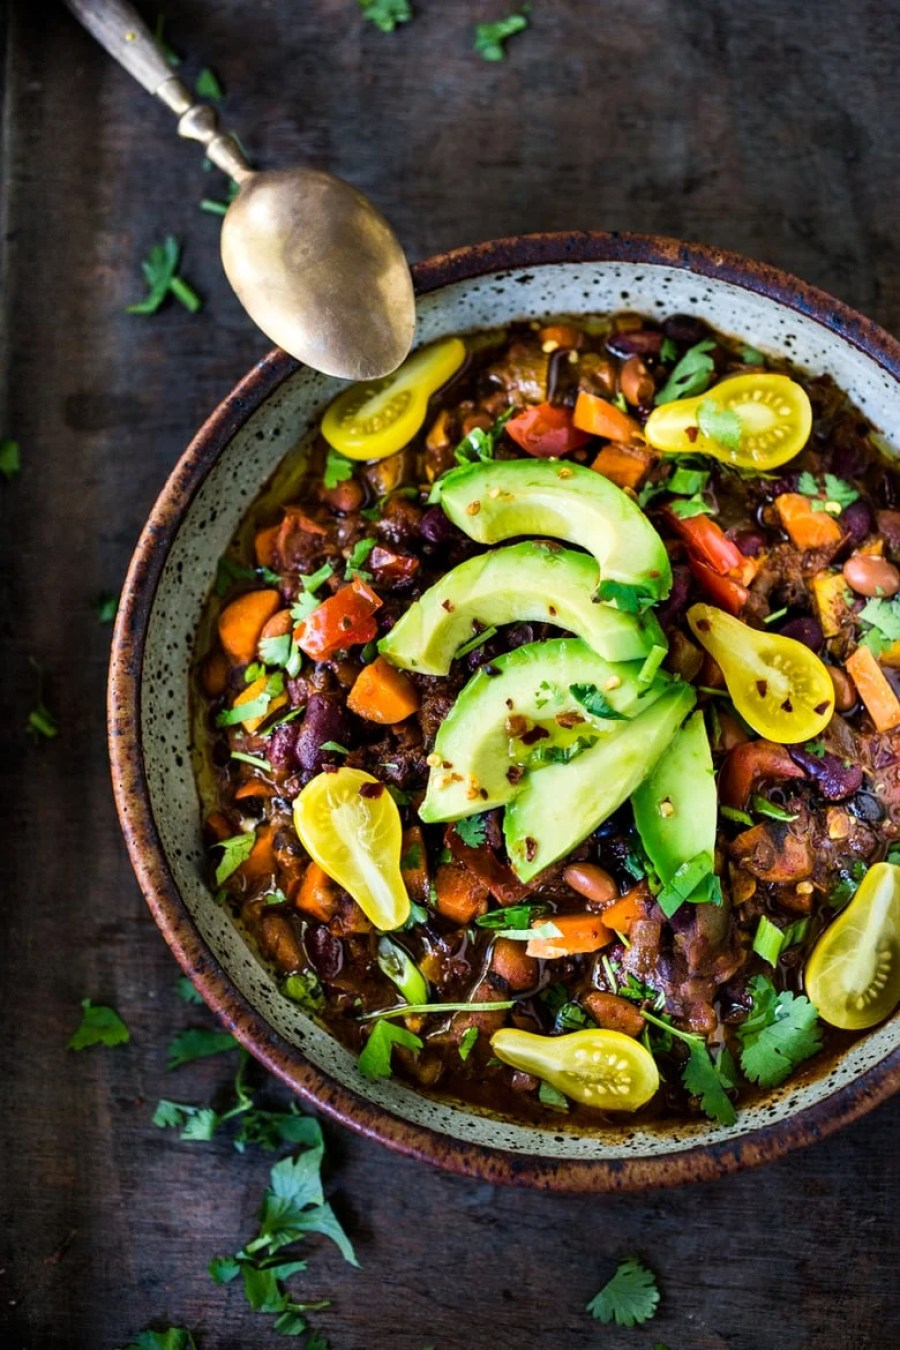 Clean out your fridge, Quick Vegan Chili - loaded up with healthy veggies and beans, this deep and complex recipe will even convert meat-eaters! Make a big batch on Sunday, then serve it during the busy workweek! | www.feastingathome.com